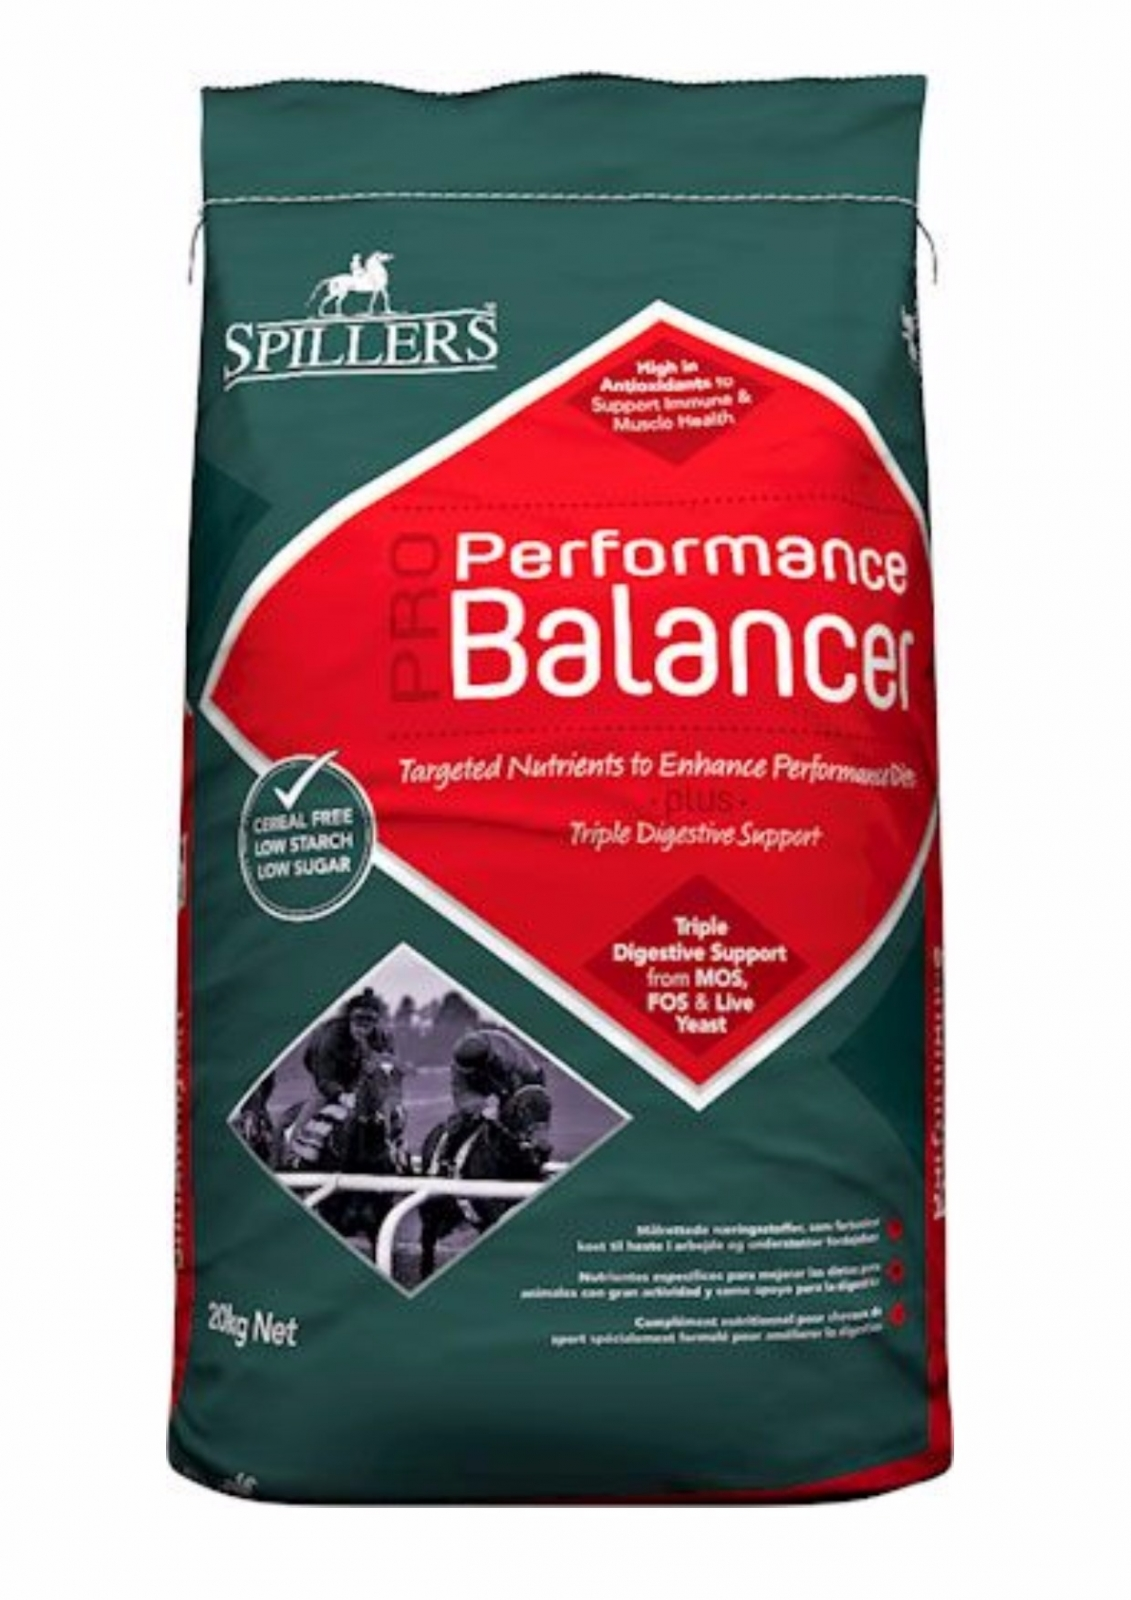 Spillers Pro Performance Balancer